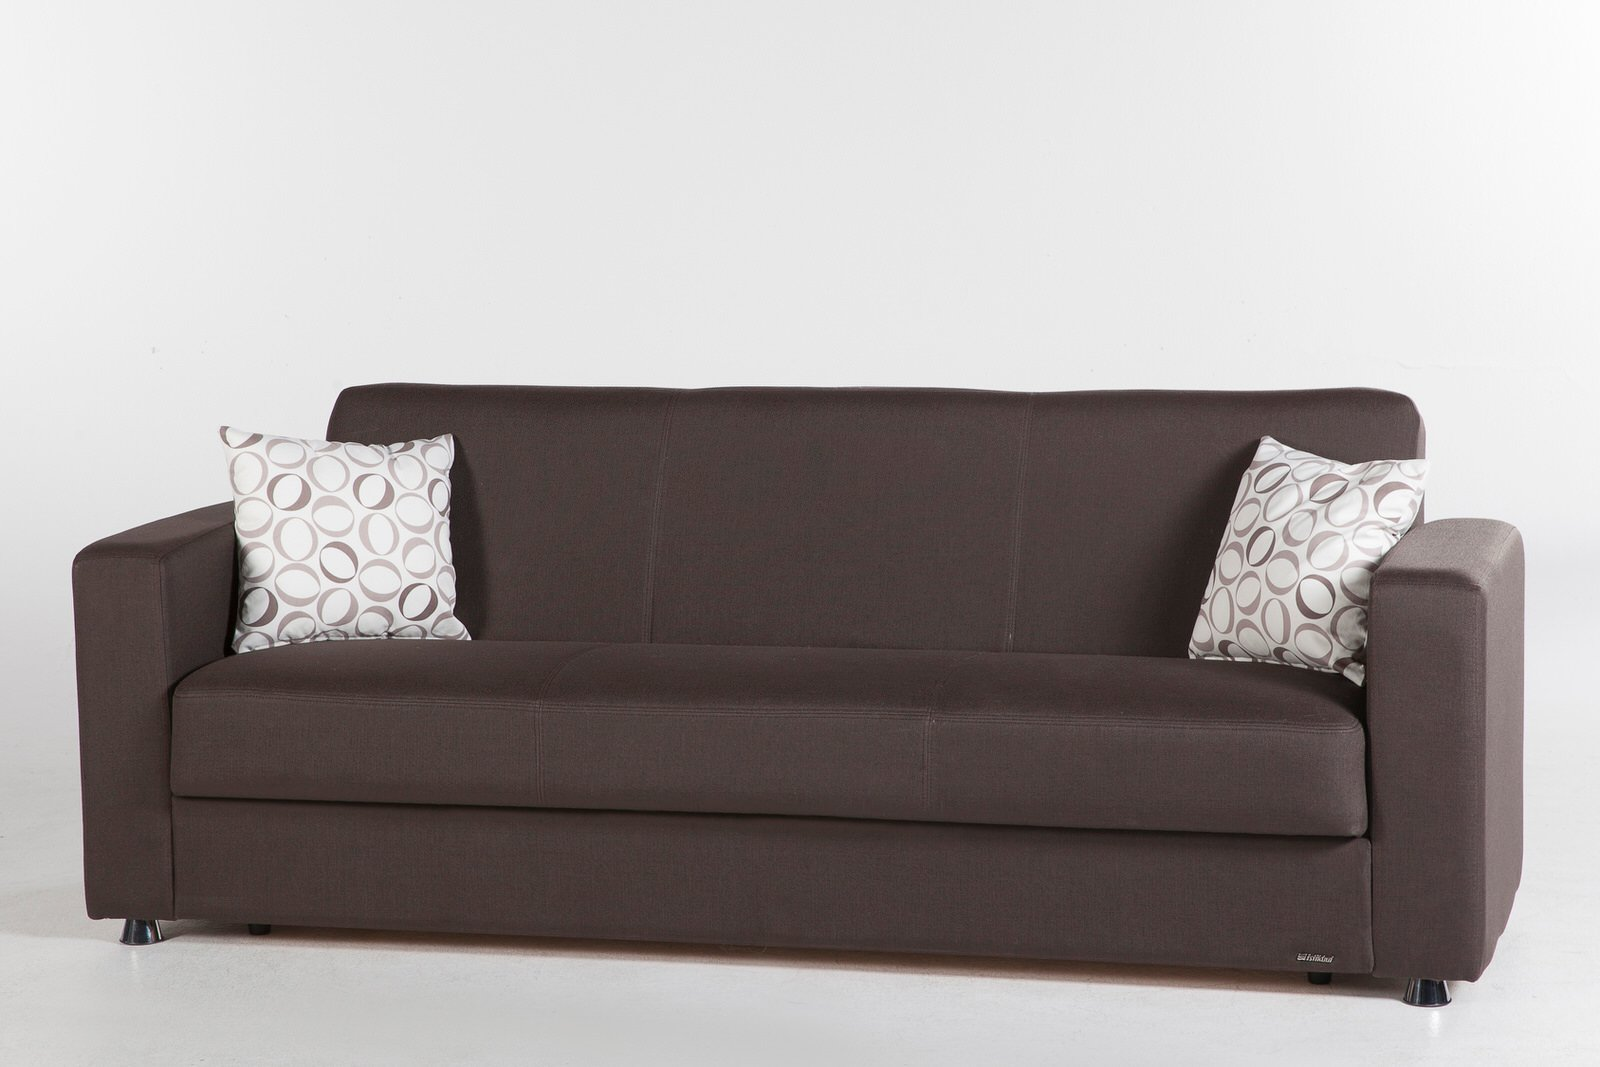 Tokyo Diego Brown Convertible Sofa Bed by Sunset